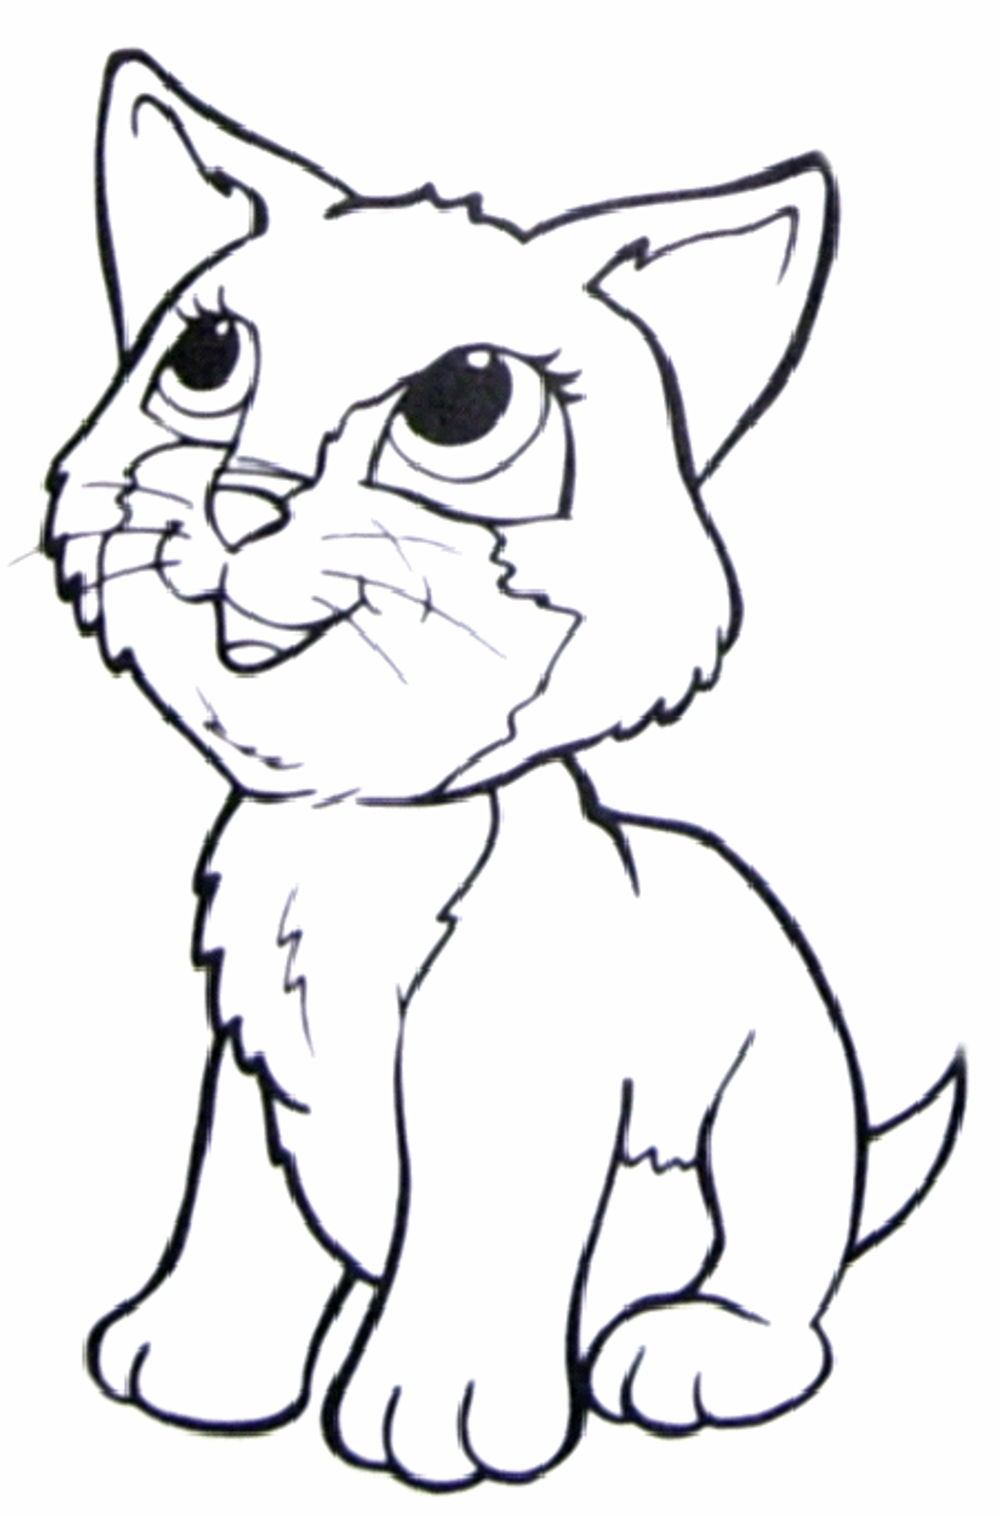 Genial Cheshire Cat Coloring Pages